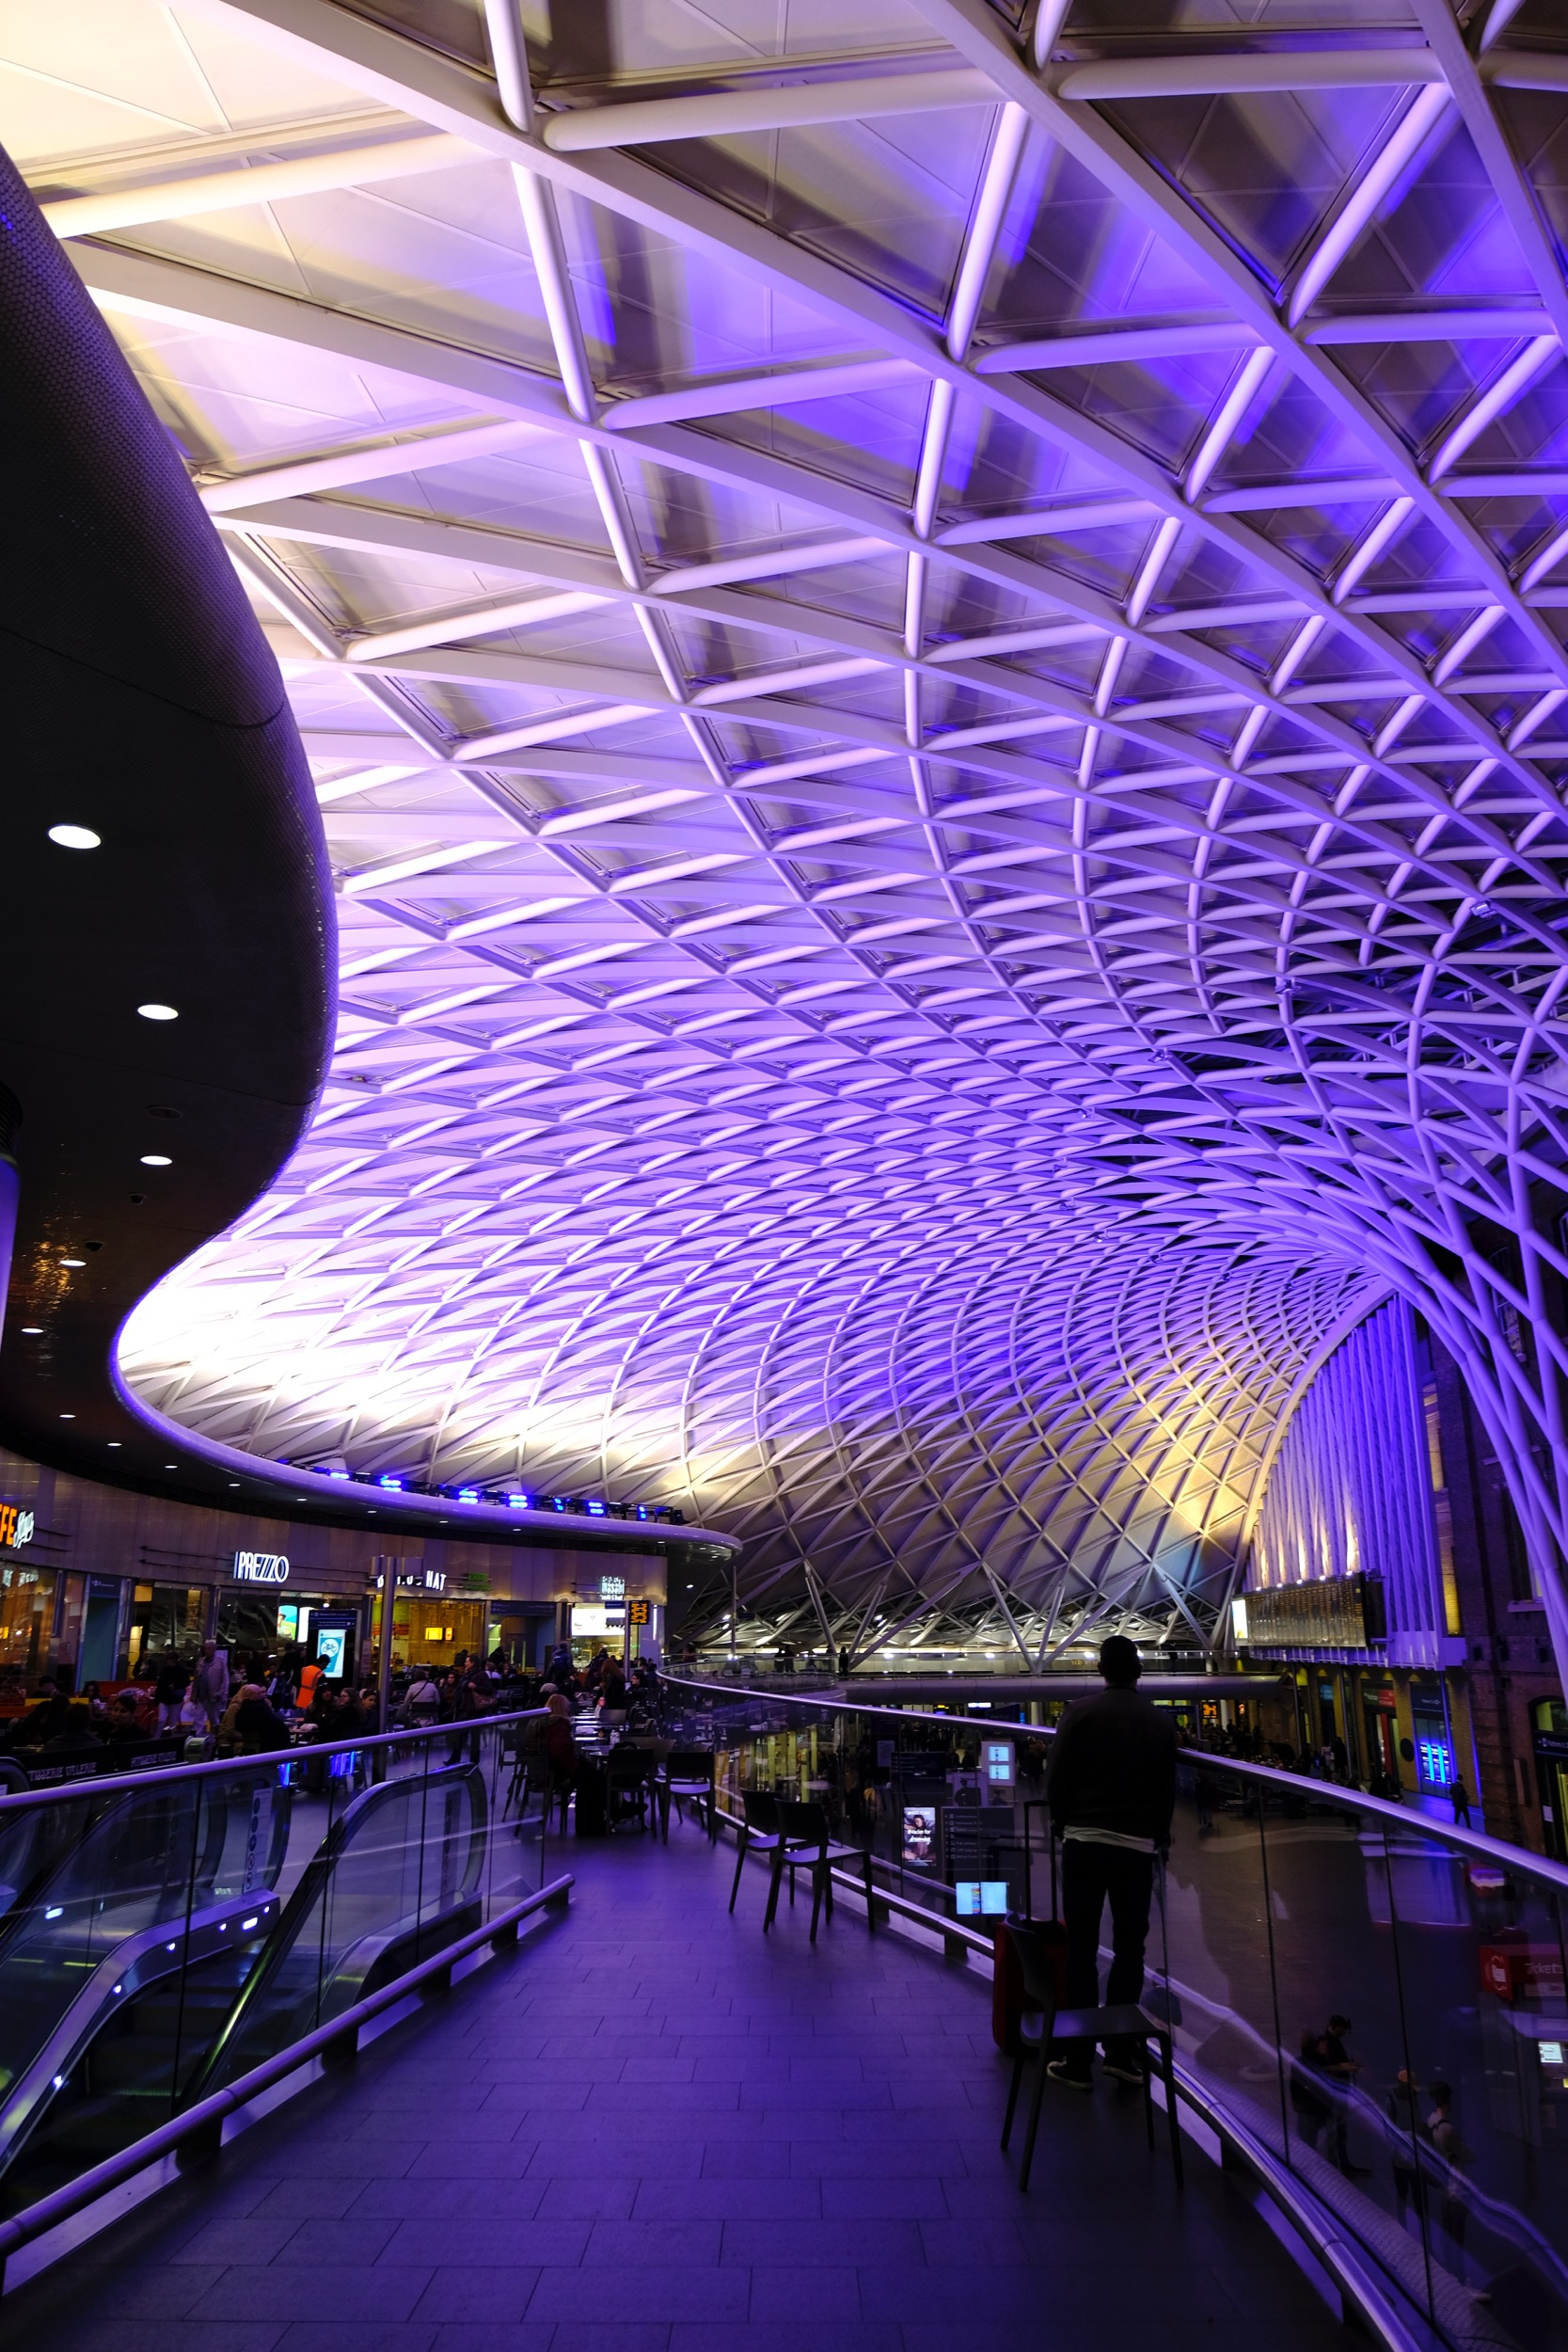 The always interesting King's Cross Station roof